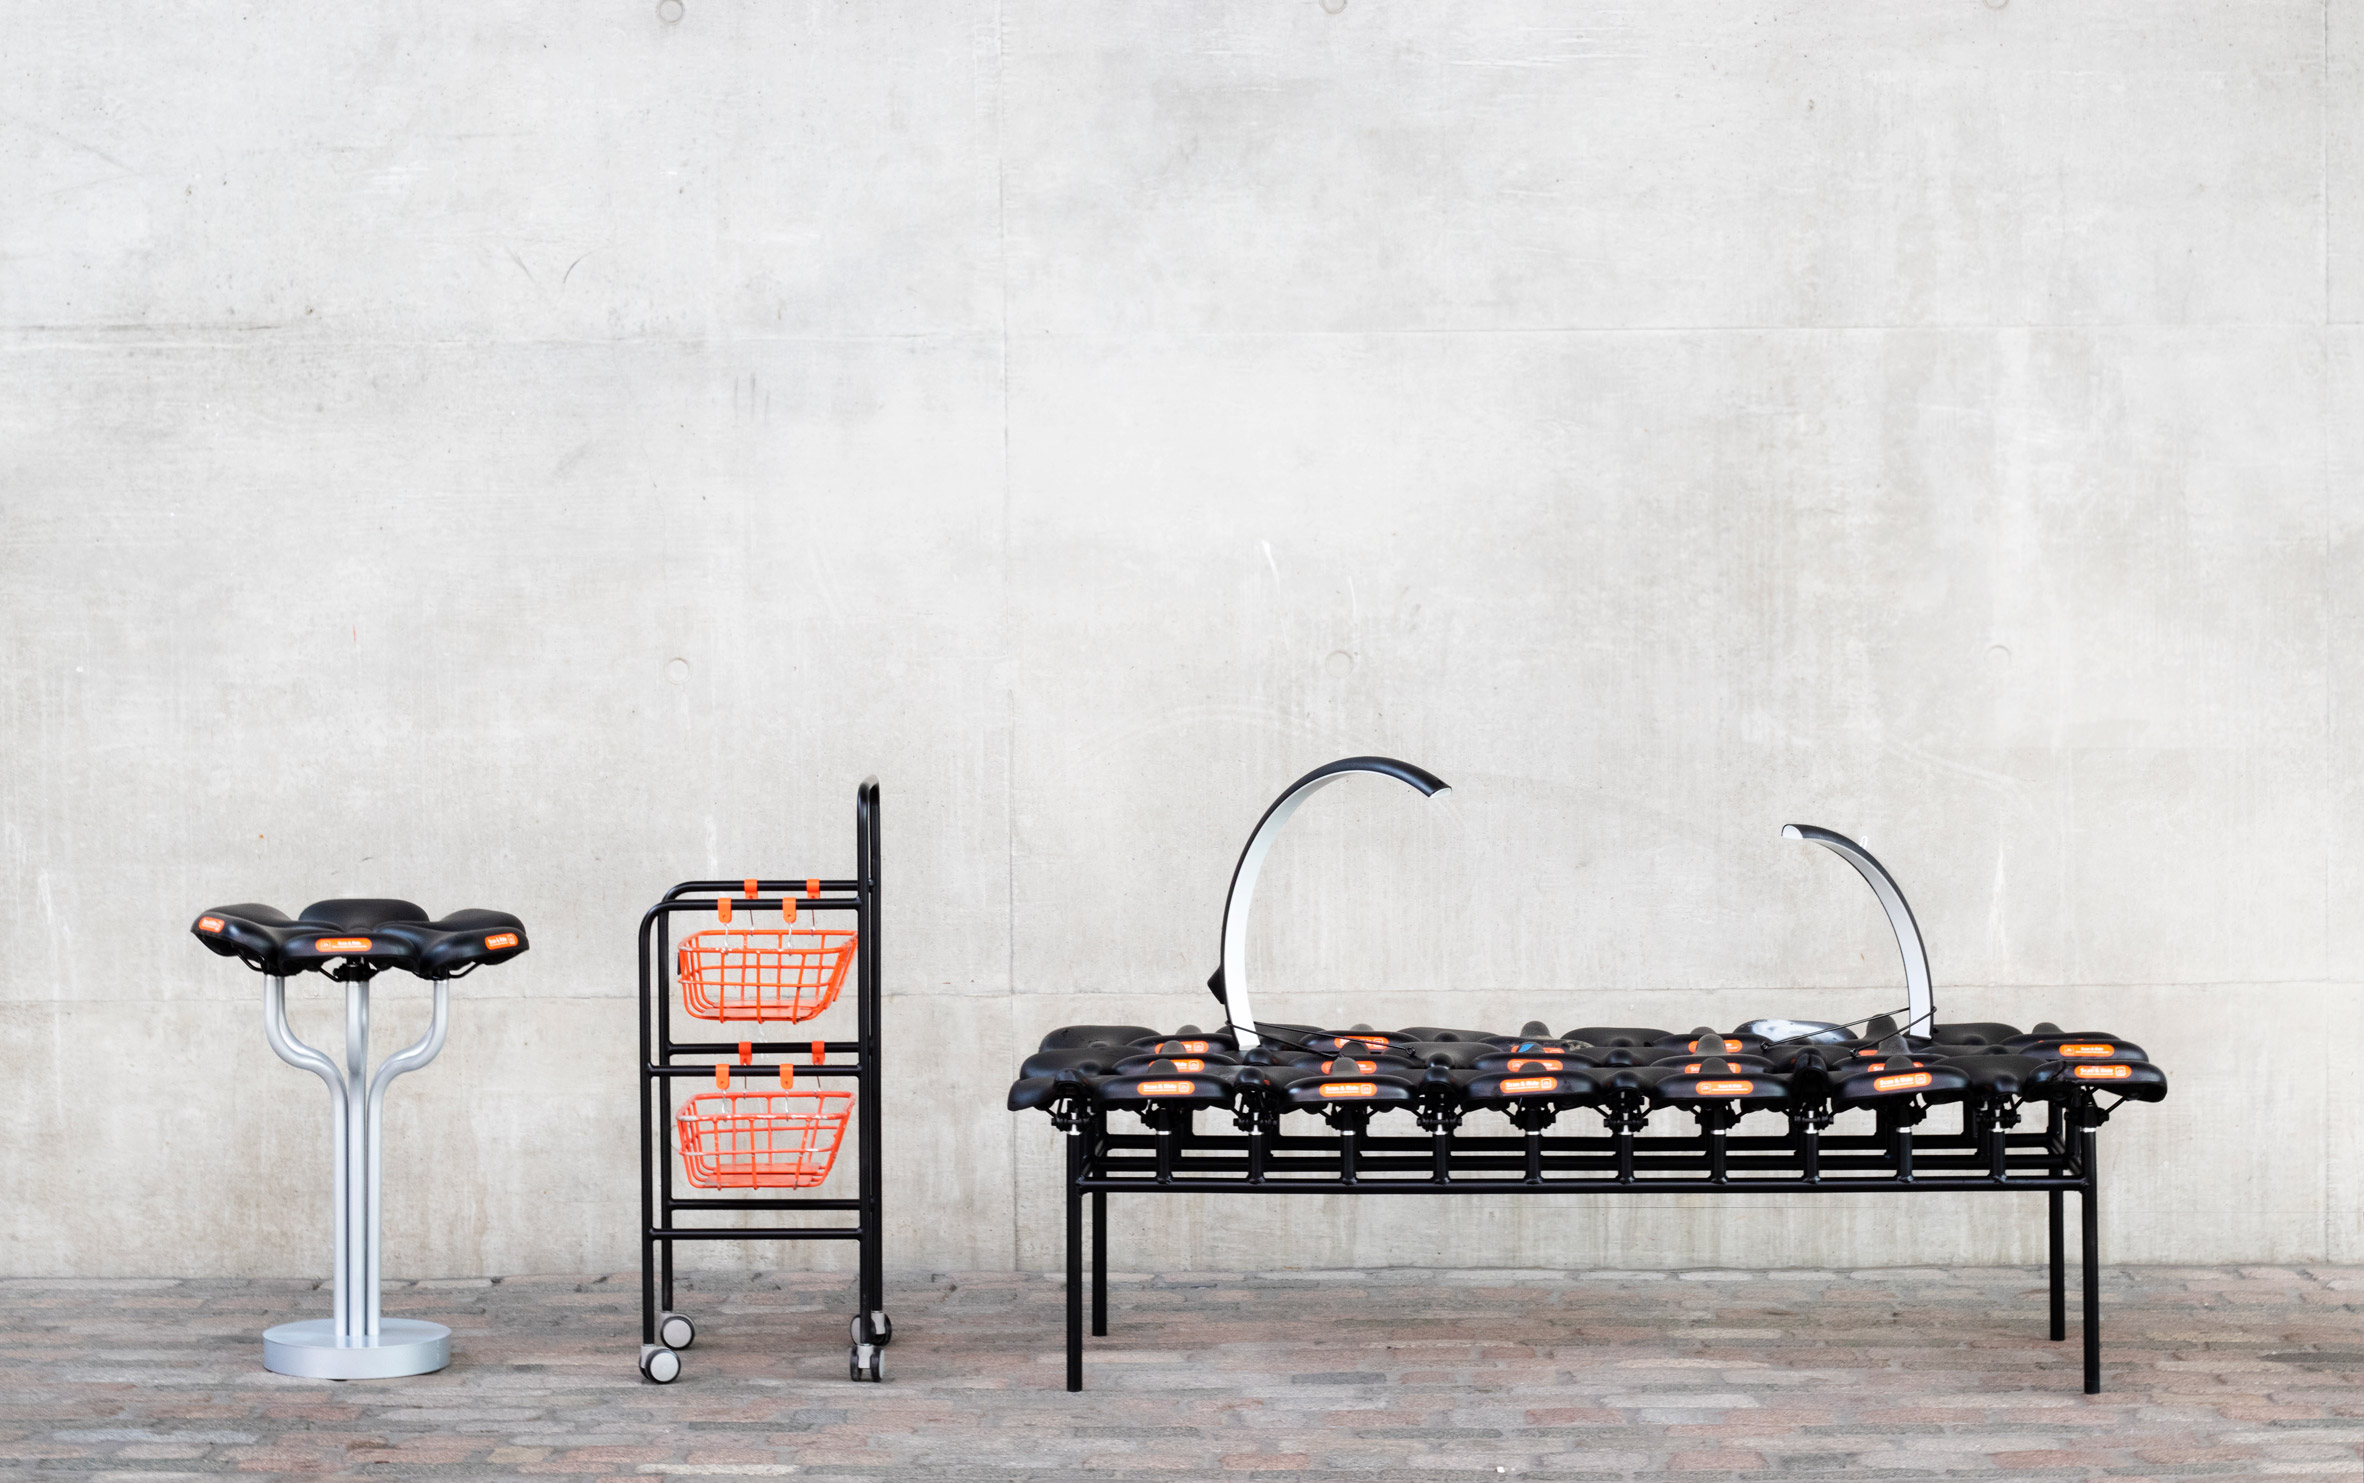 Qiang Huang's Bike Scavengers furniture is made from salvaged shared bicycles